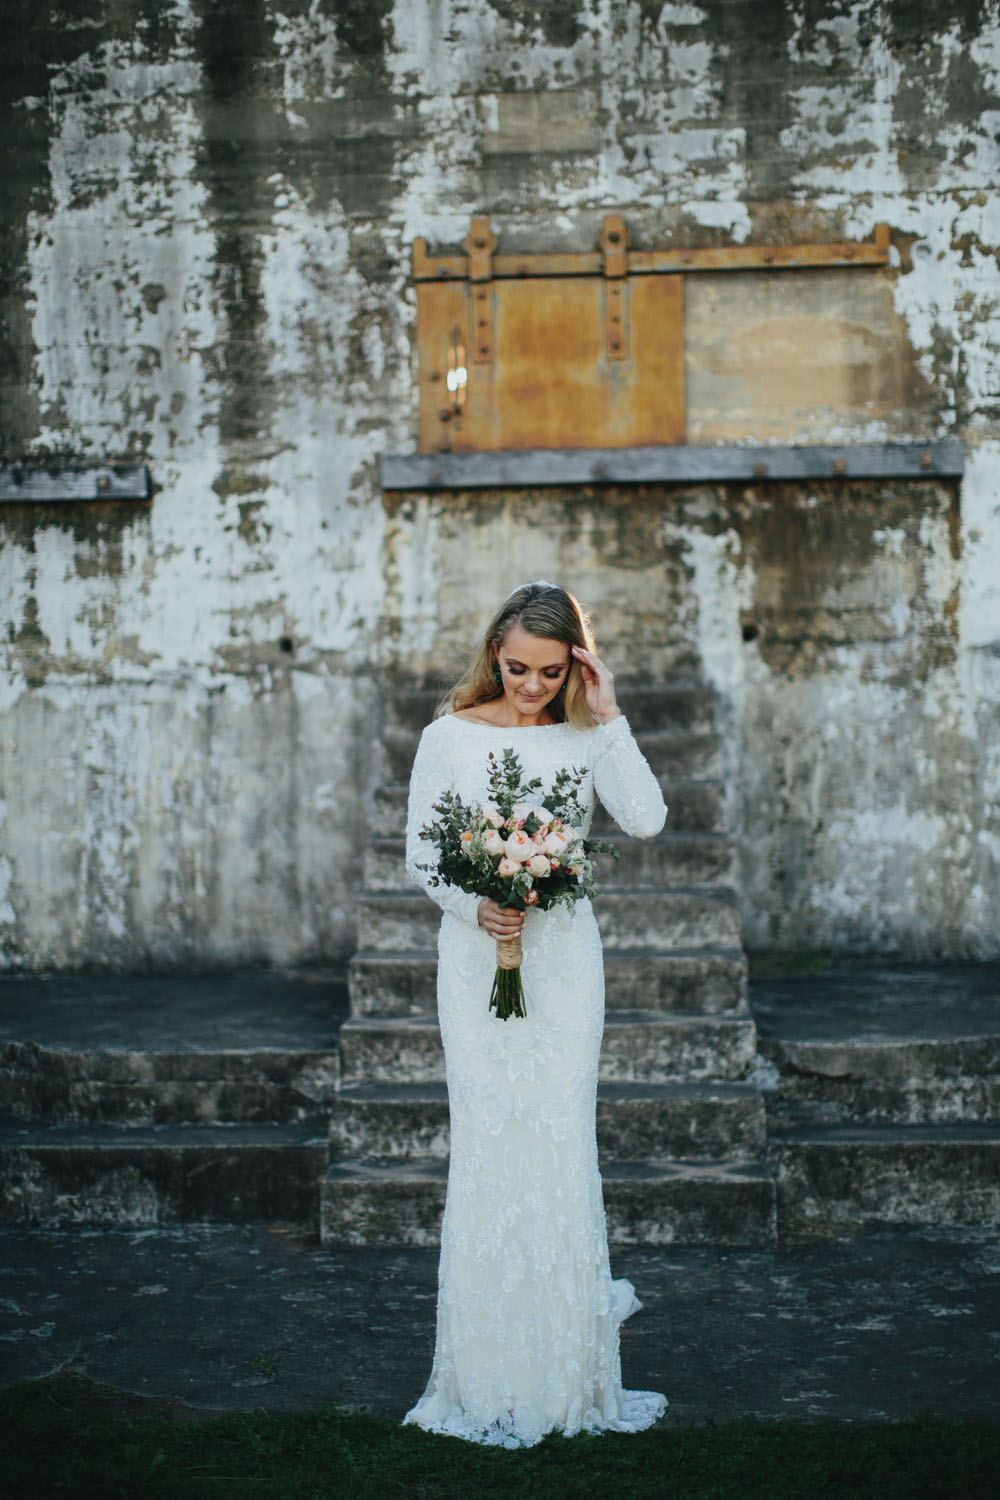 brisbane byron bay gold coast wedding photographer Finch & Oak_088.jpg